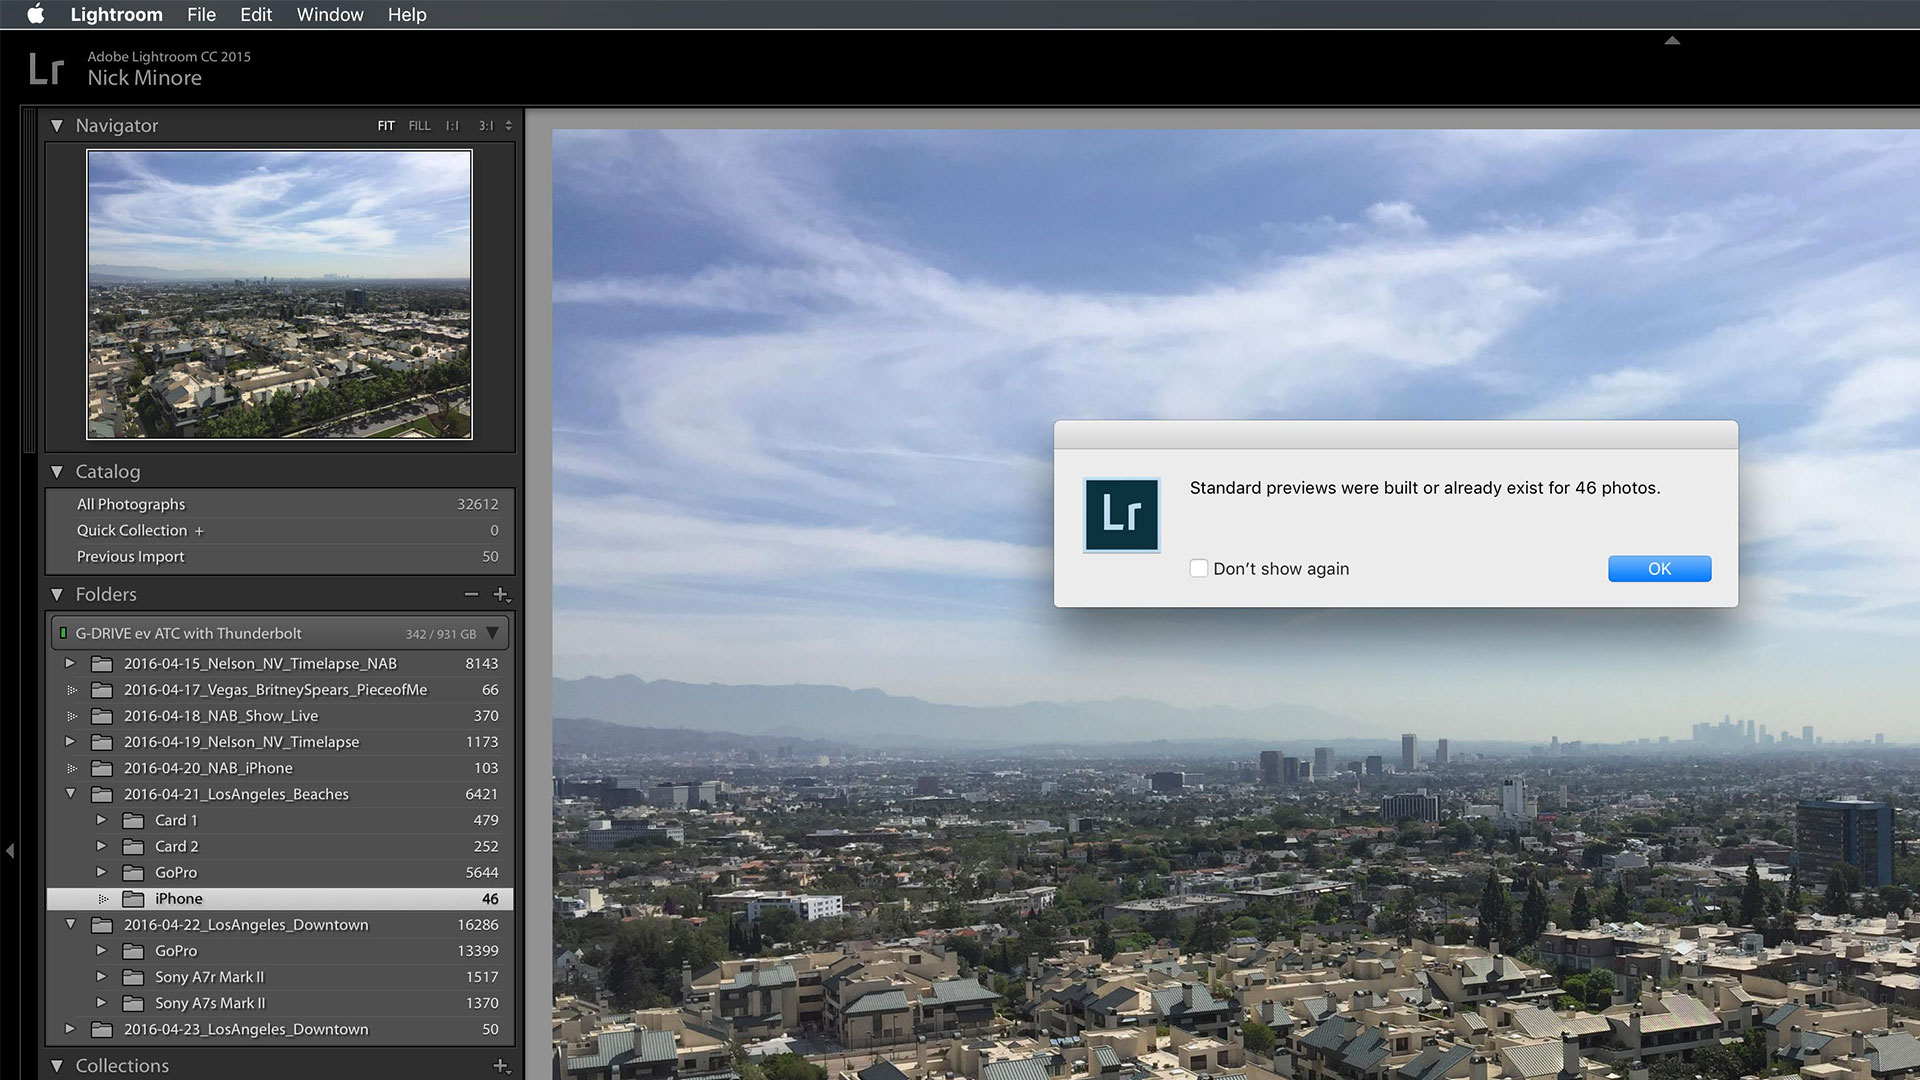 Building Standard Previews in Lightroom Featured